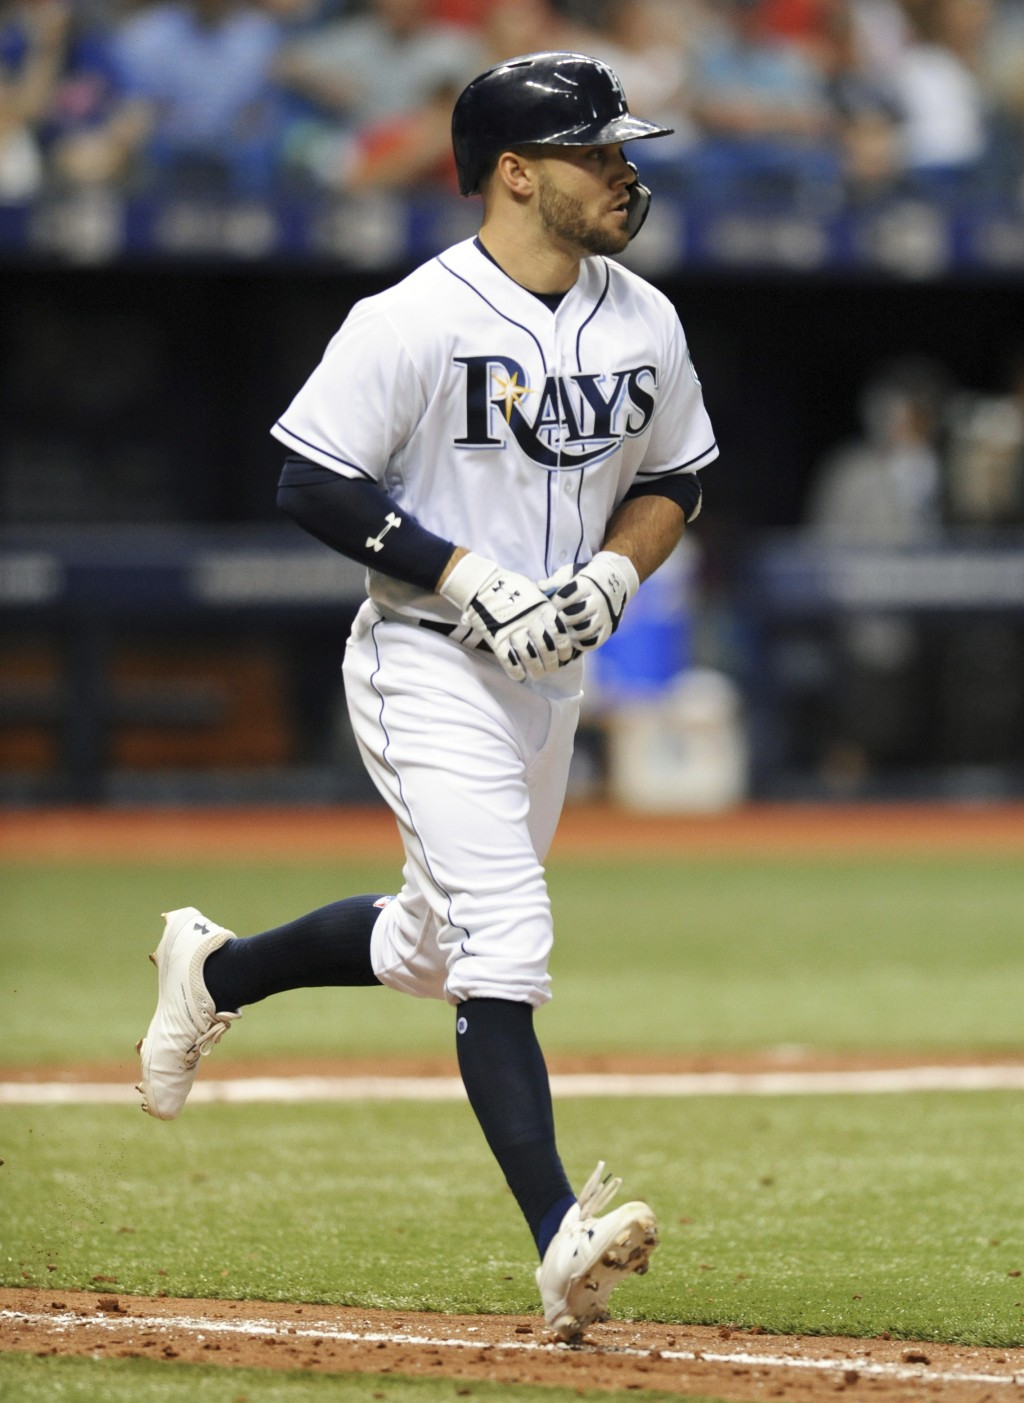 Tampa Bay Rays' Johnny Field, making his major league debut, jogs toward first base after walking against Philadelphia Phillies starter Jake Arrieta d